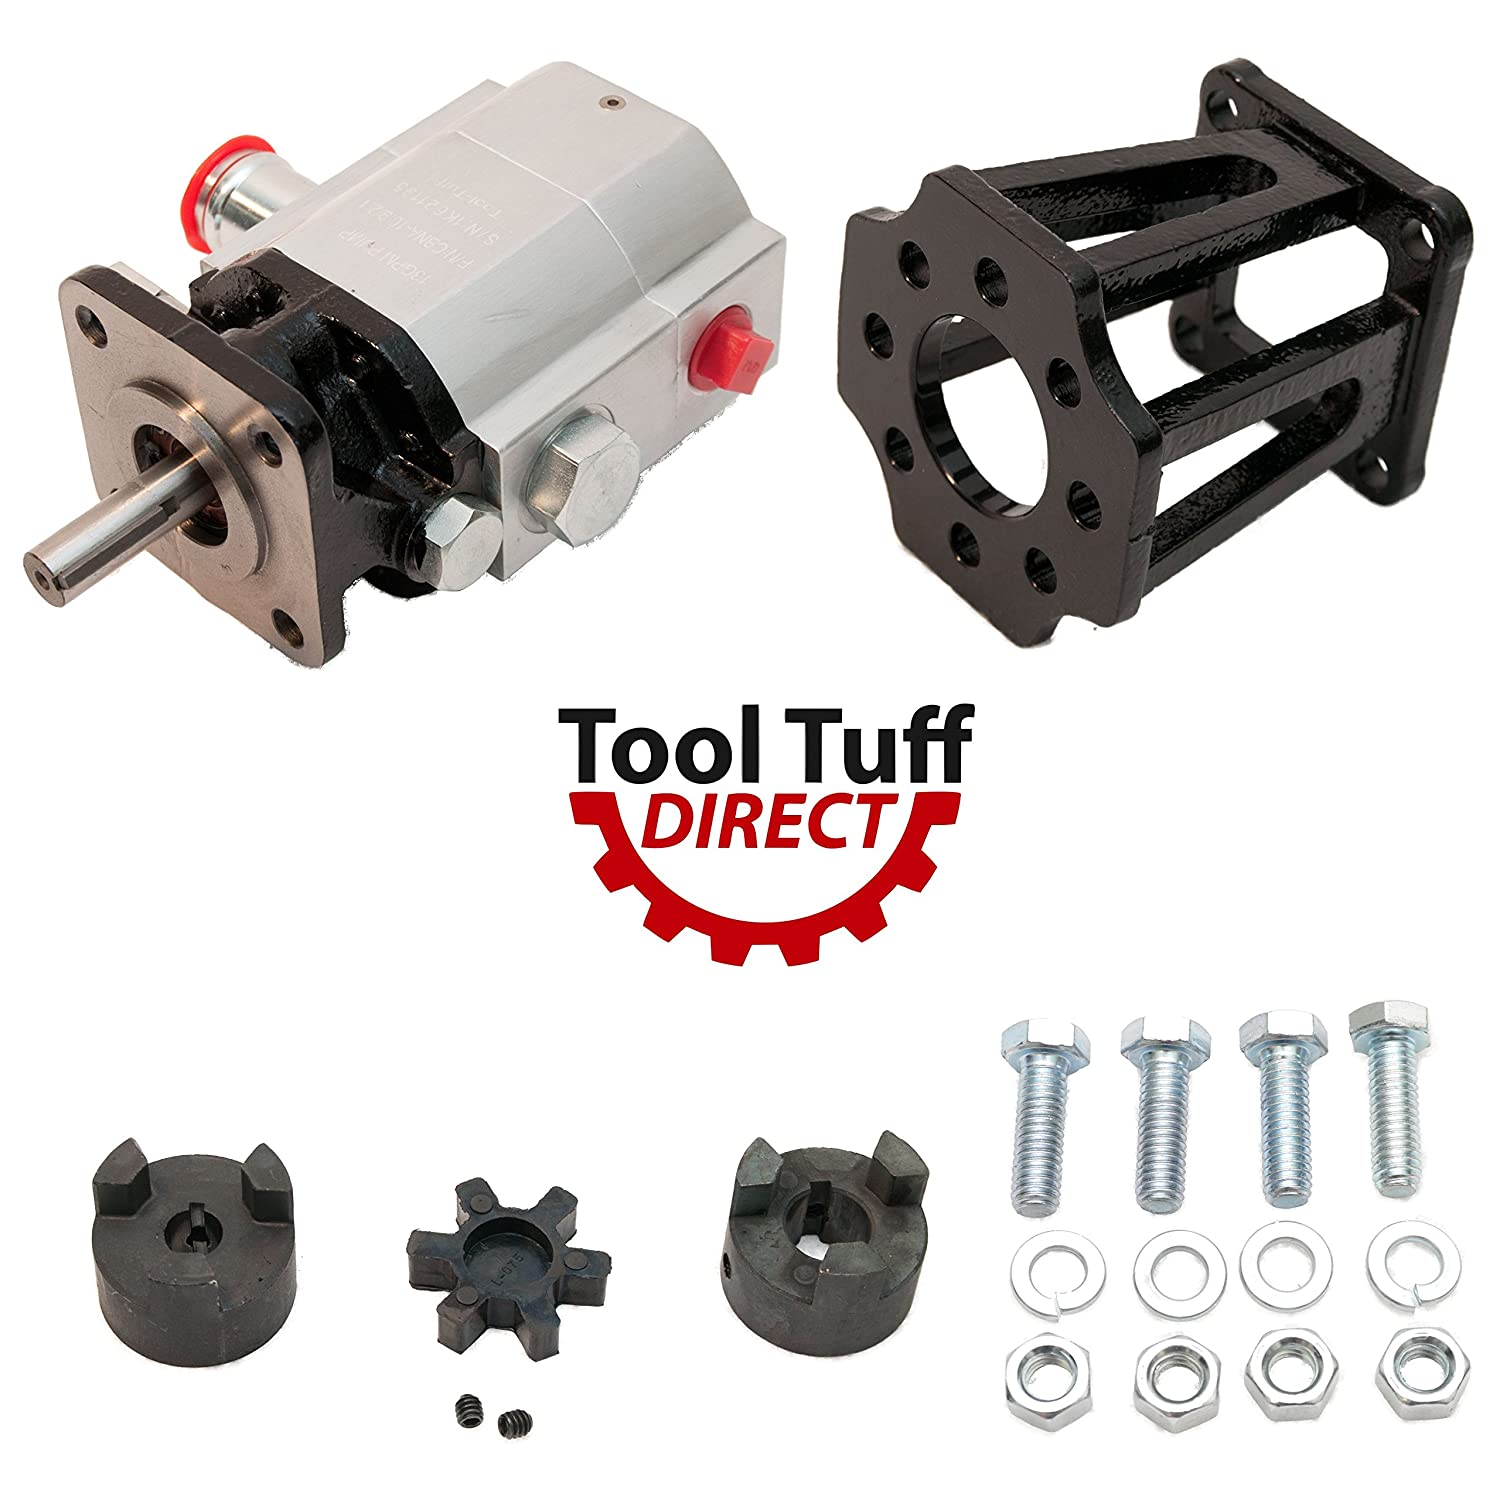 Tool-Tuff Log Splitter Build Kit: 13 GPM Pump, Coupler, Mount, Bolts, For Huskee, Speeco, etc or DIY Splitter Project (For 3/4 Engine Crankshaft) Tool Tuff Direct